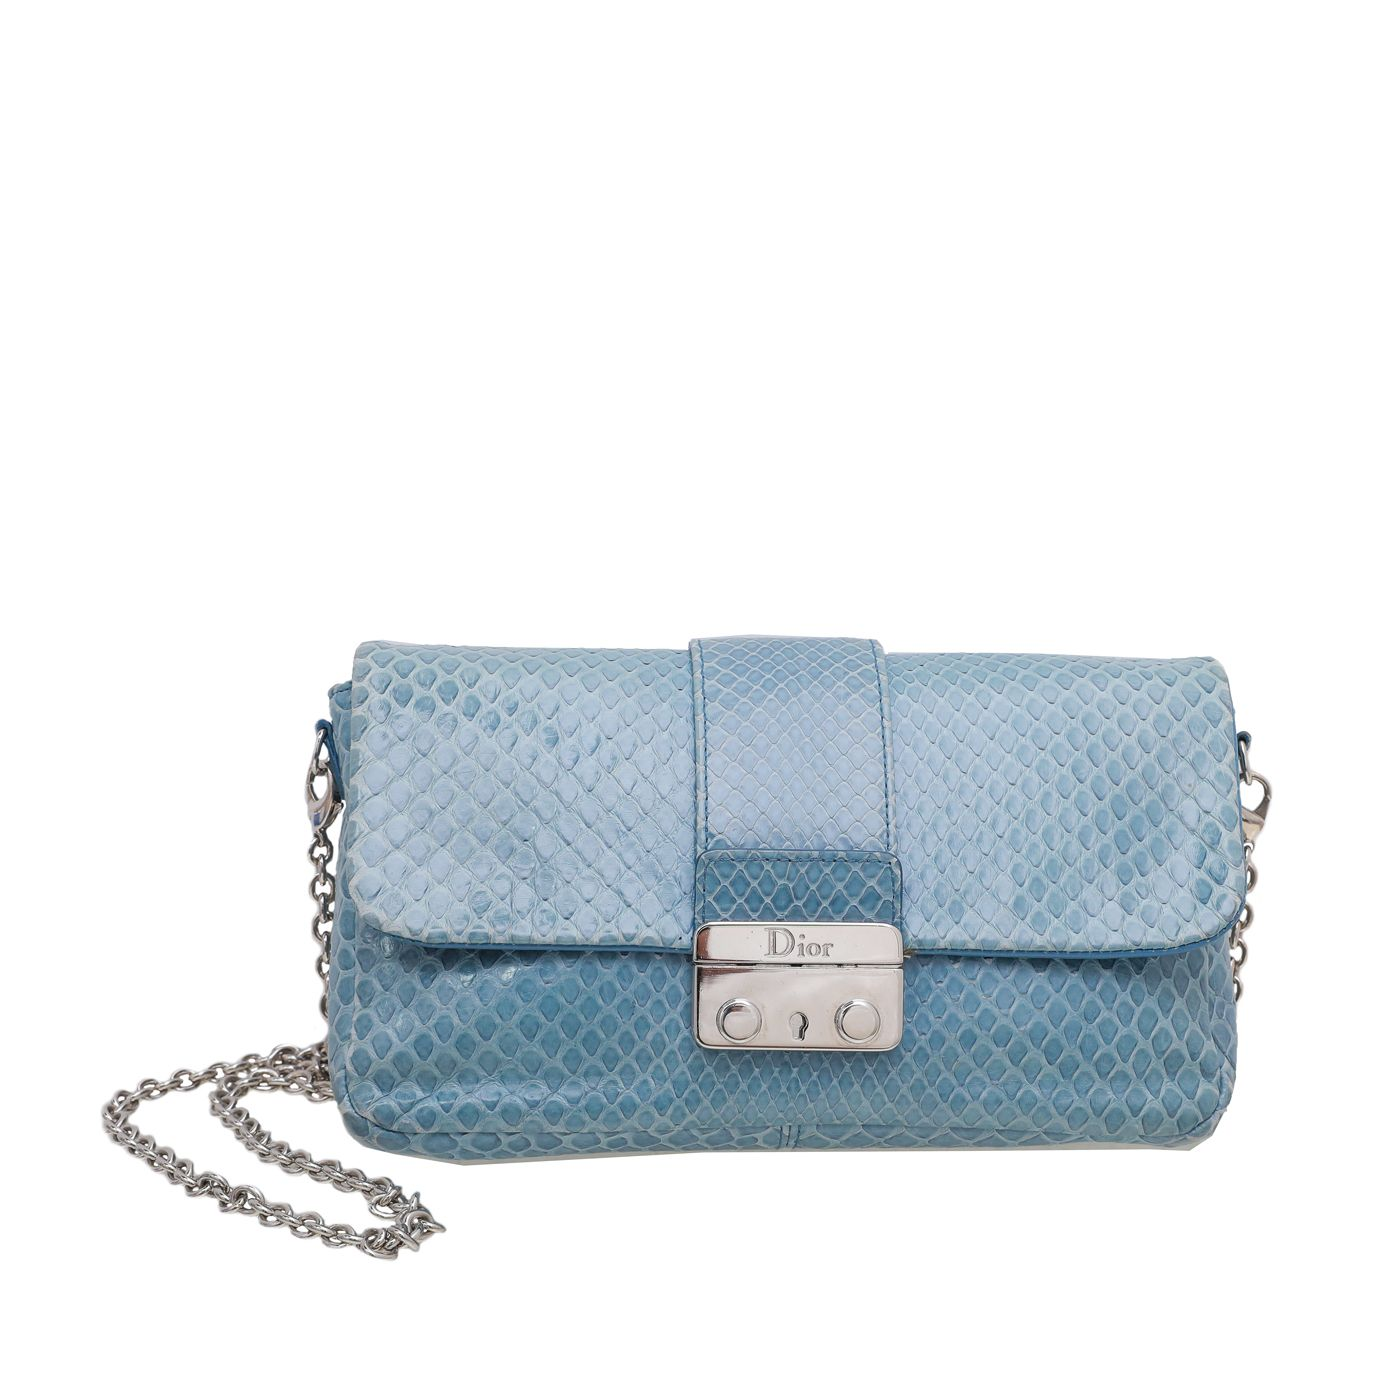 Christian Dior Blue Shiny Python Miss Dior Small Chain Bag